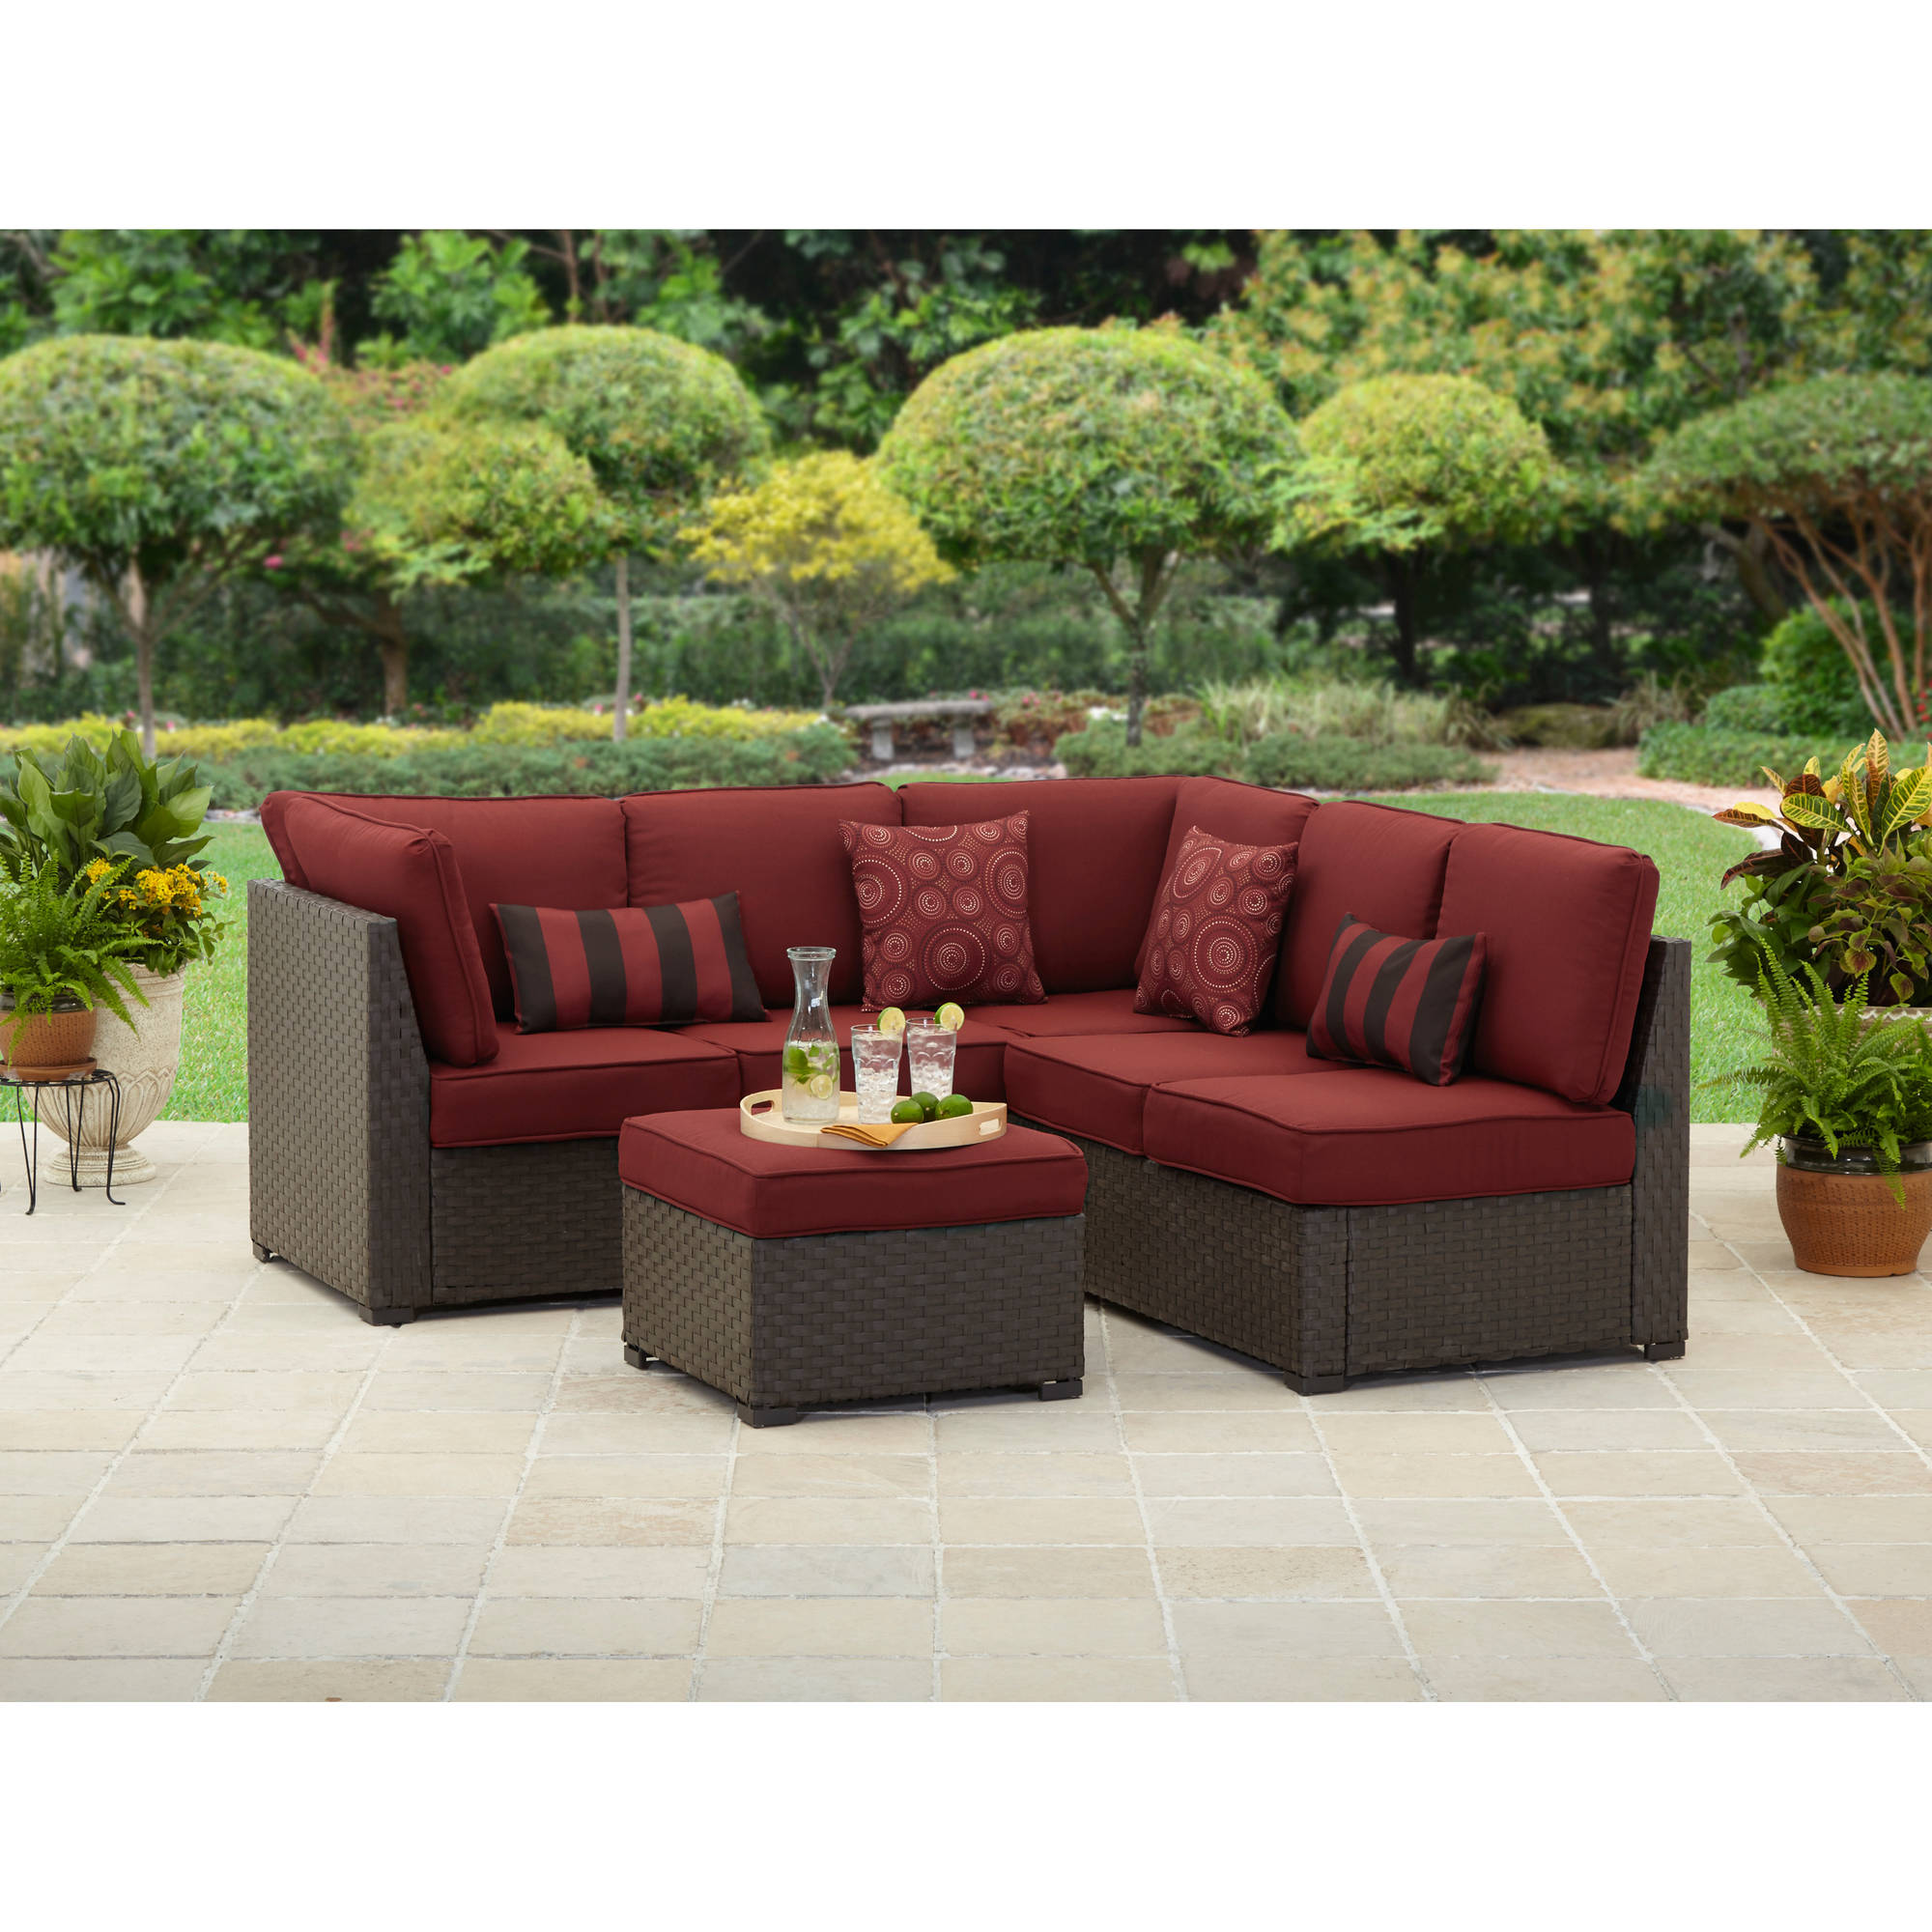 Outdoor Patio Furniture Sofa Chairs 3 Piece Wicker Set Better Homes